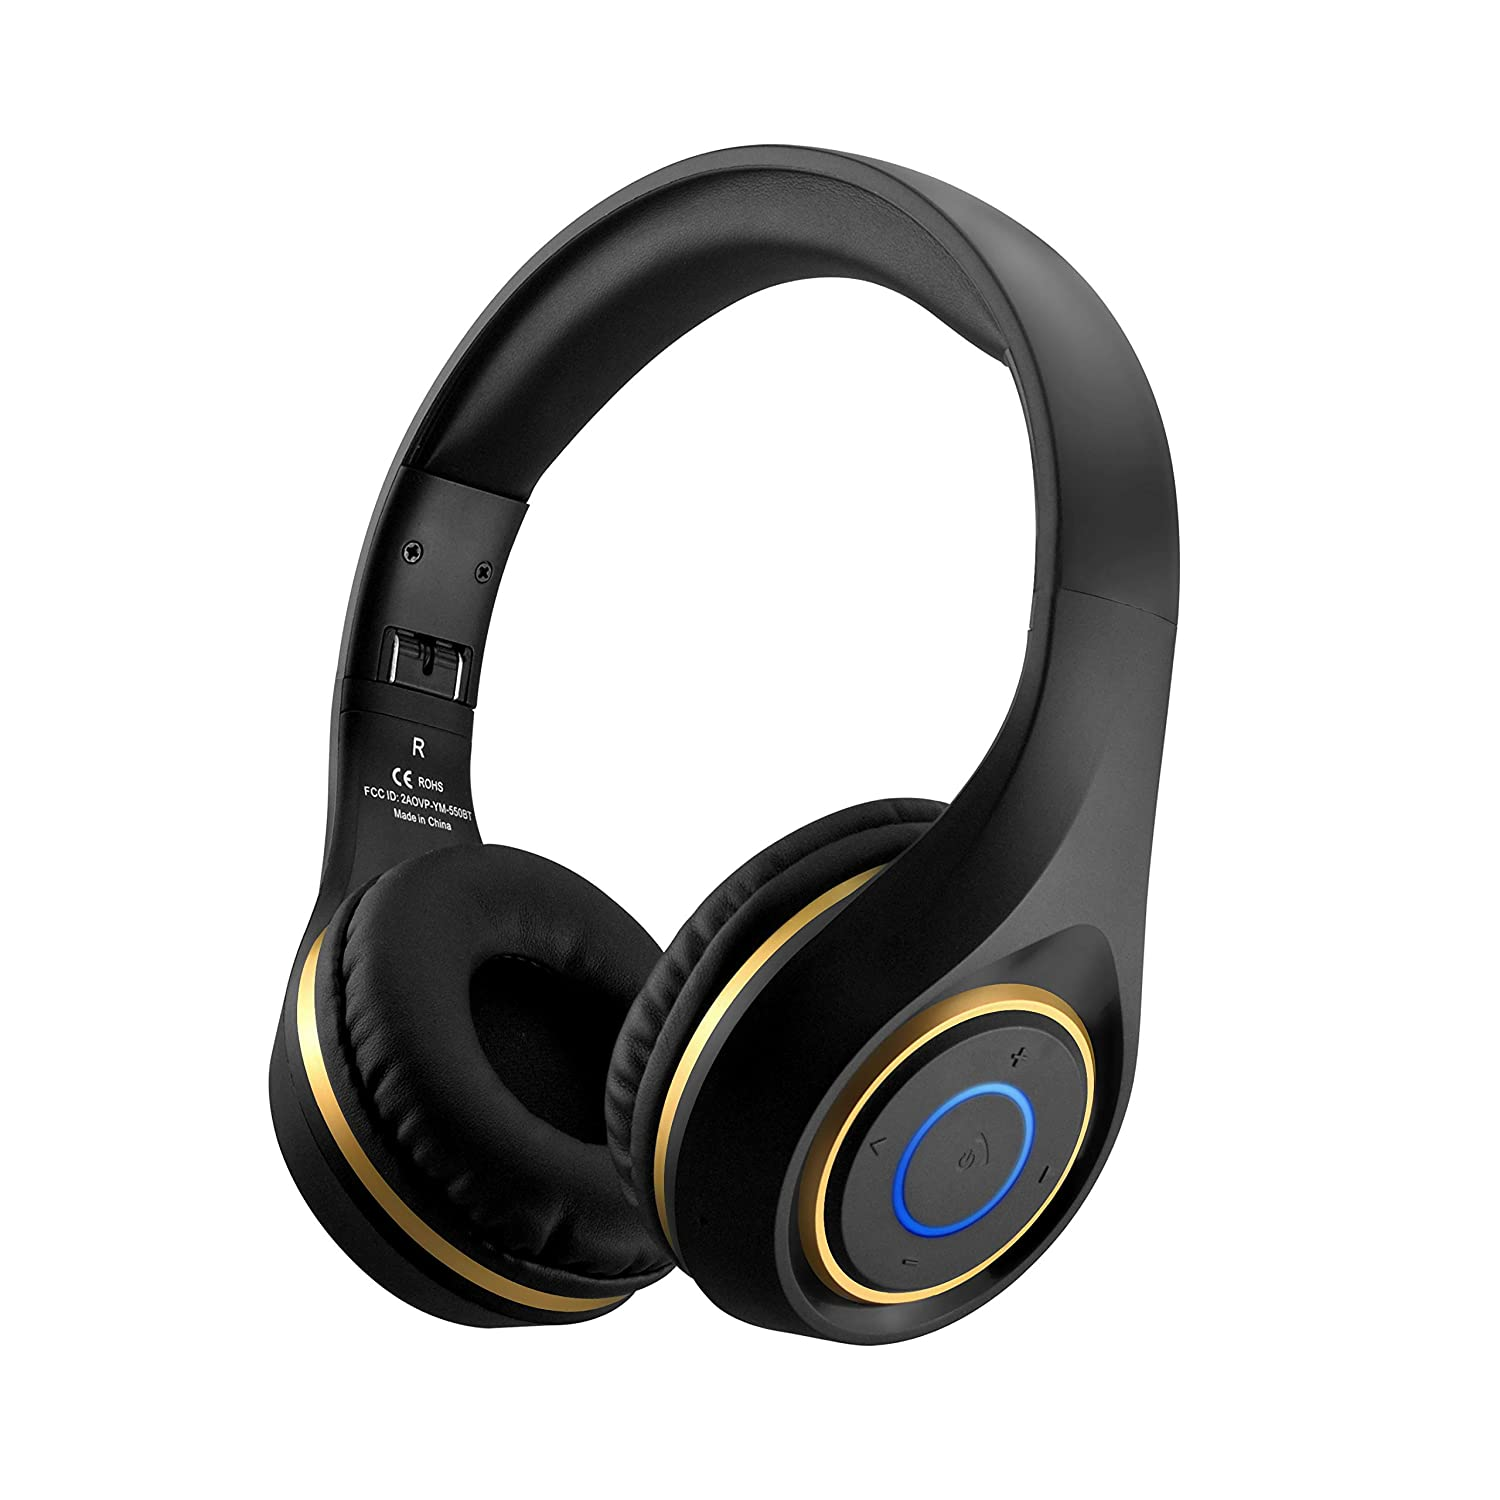 Bluetooth Headphones Sports Wireless Earphones Headset Noise Cancelling CSR Chip Super Bass Long Playtime Foldable Built-in Microphone Volume Control Over Ear Gym Running Bluetooth Headband Earbud